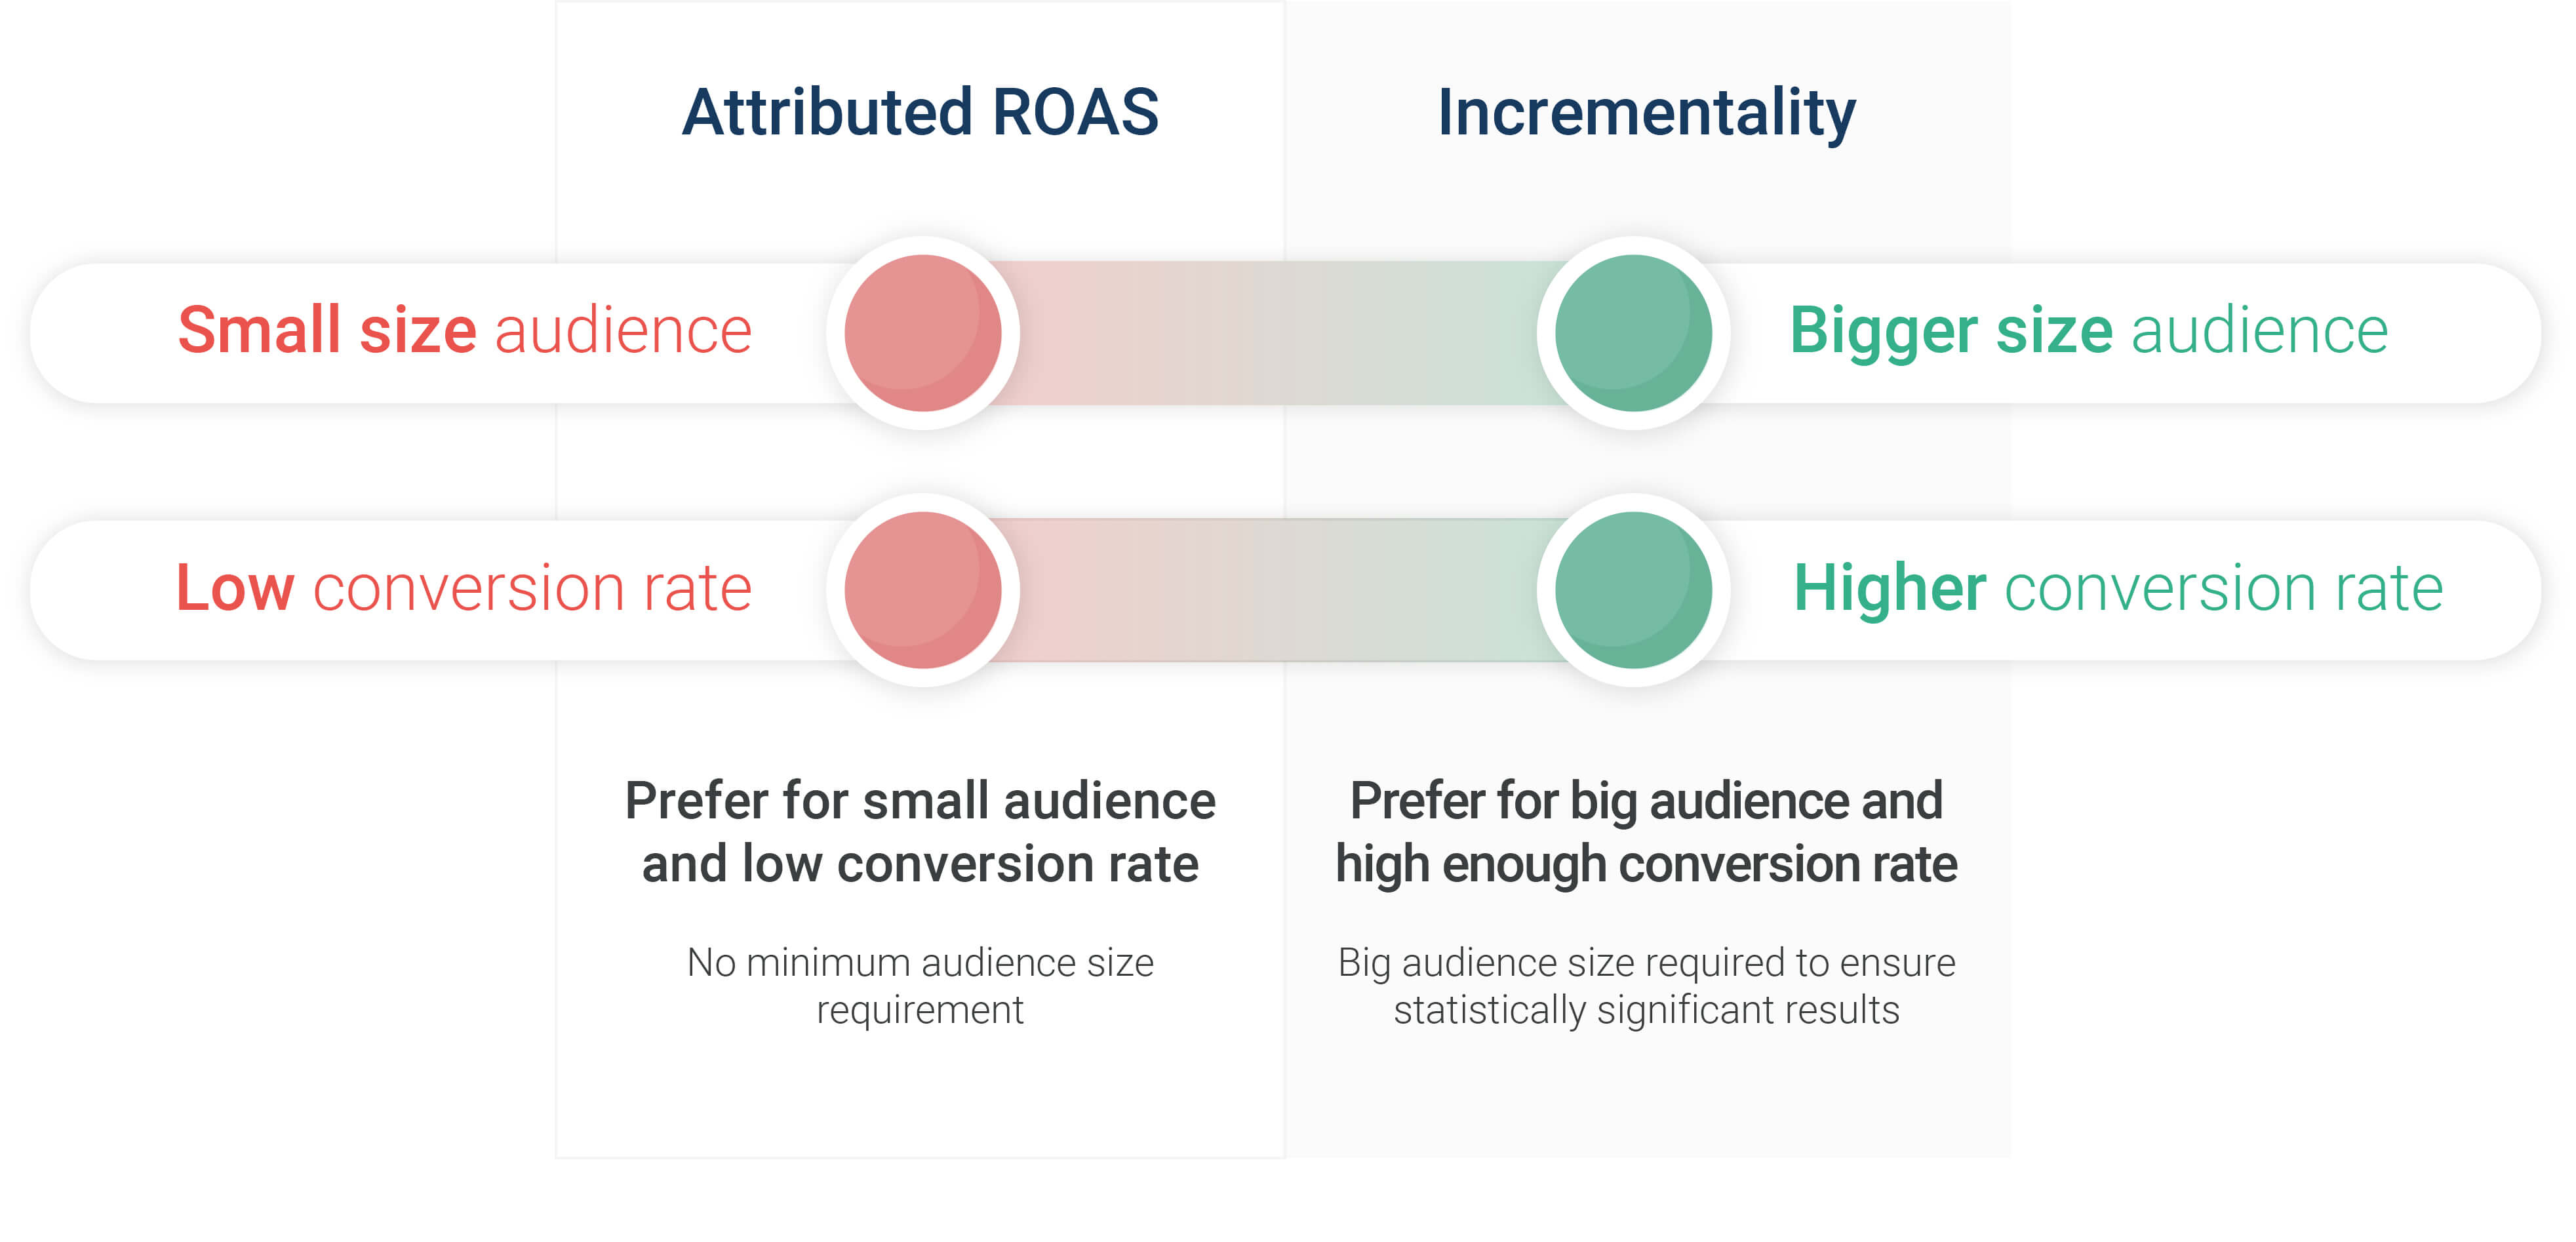 Diagram comparing ROAS and Incrementality. Text: Attributed ROAS vs. Incrementality: Attributed ROAS: a small audience size and a low conversion rate. Prefered for small audiences and low conversion rate (no minimum audience size requirement). Incrementality: Bigger size audience and higher conversion rate; preferred for big audience and high enough conversion rate. Big audience size required to ensure significant results.